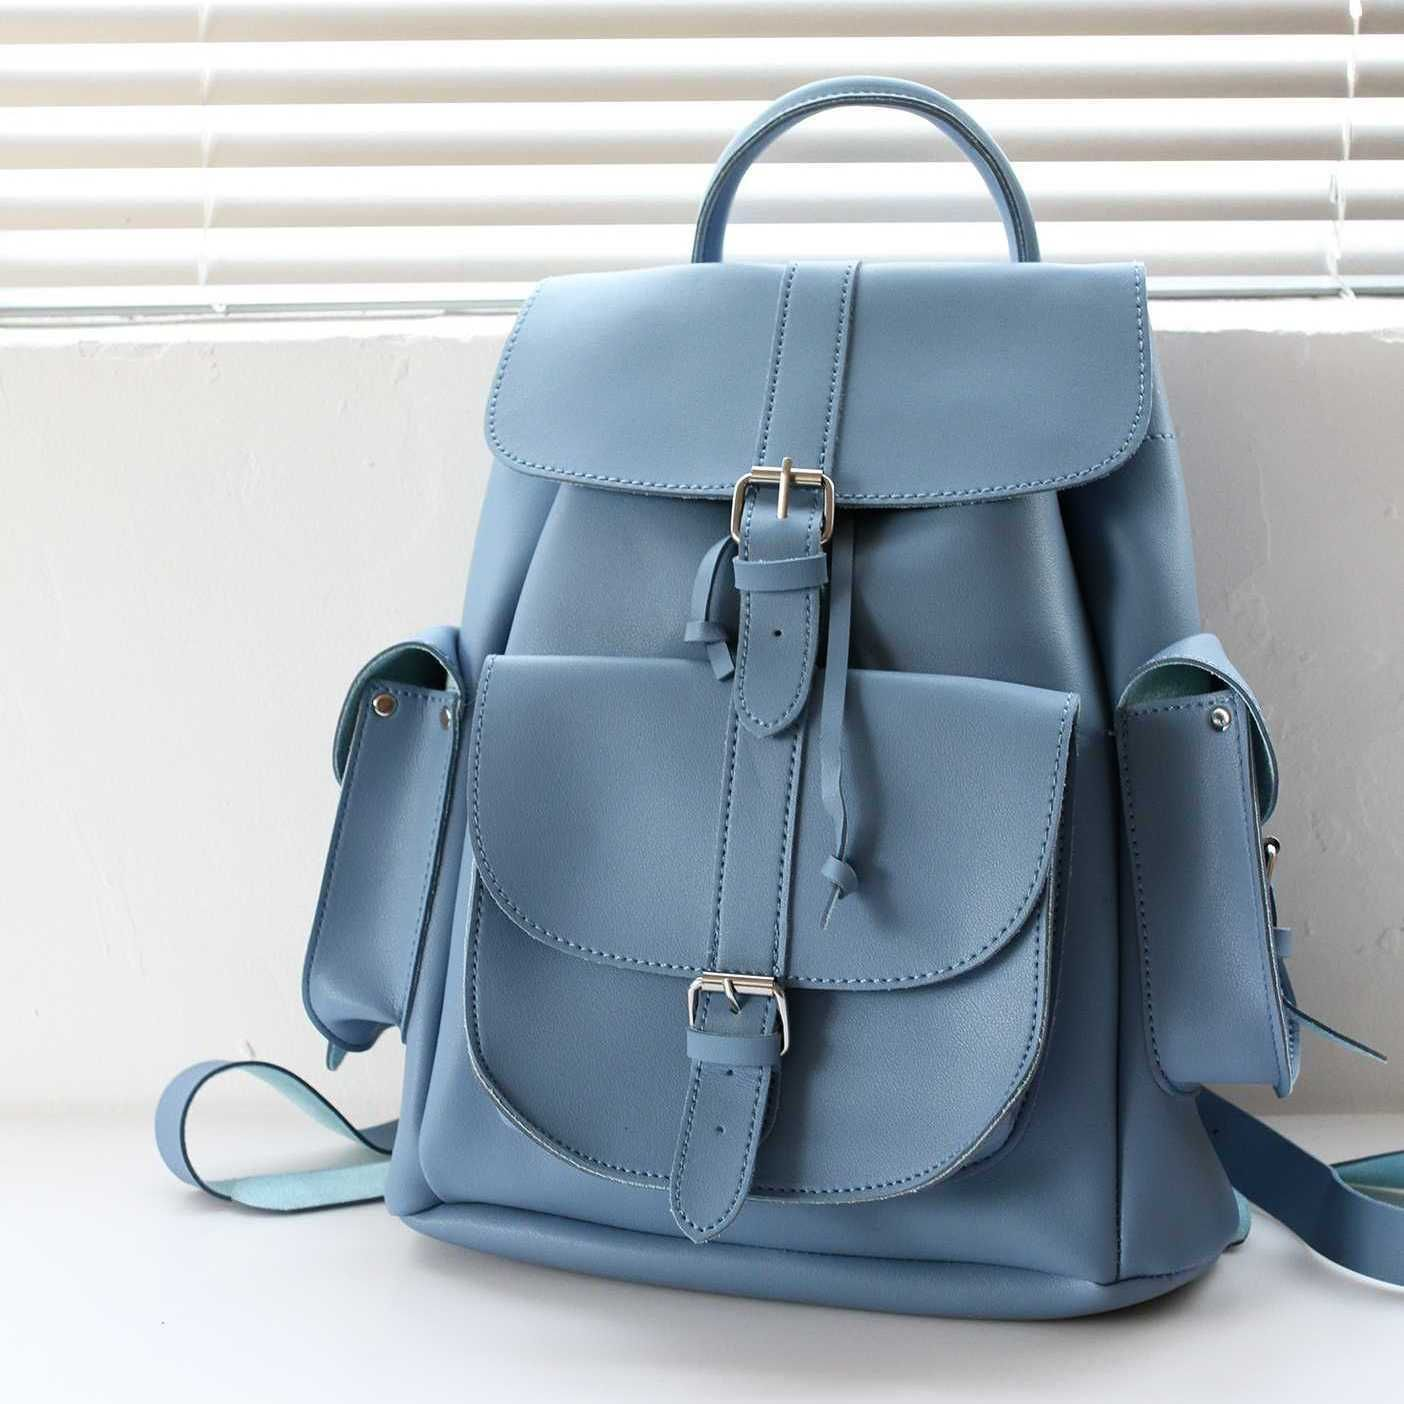 f365426c6f college backpack school bags girls bagpack leather bookbags women s.  Save.extra 20% OFF on  45+ by code SUMMER20%OFF